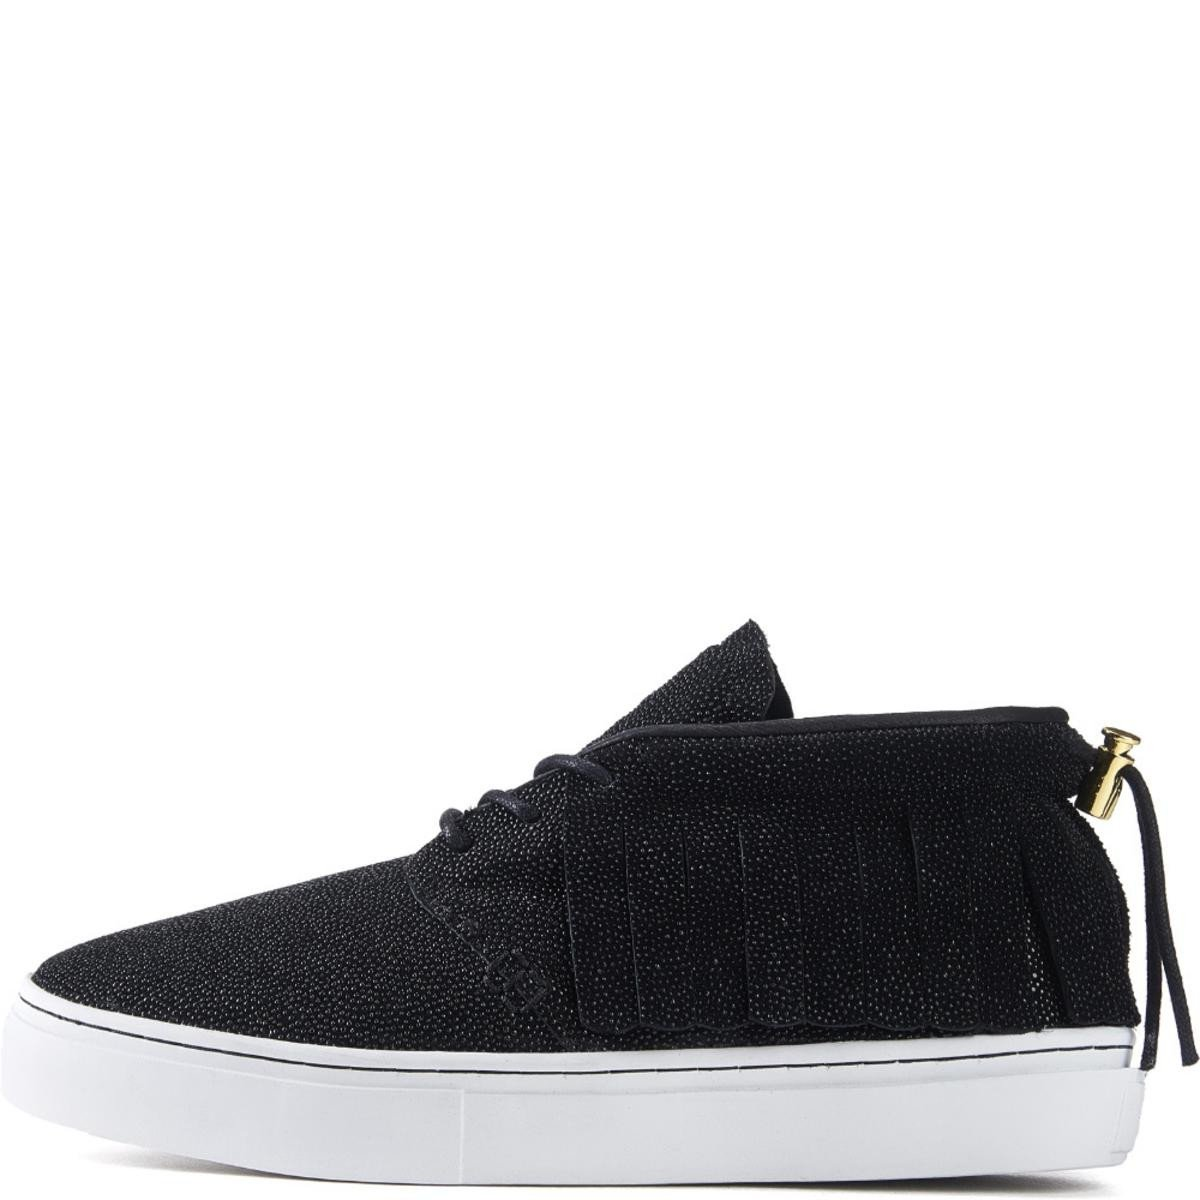 Clear Weather for Men: One O One Black Stingray Chukka Sneaker